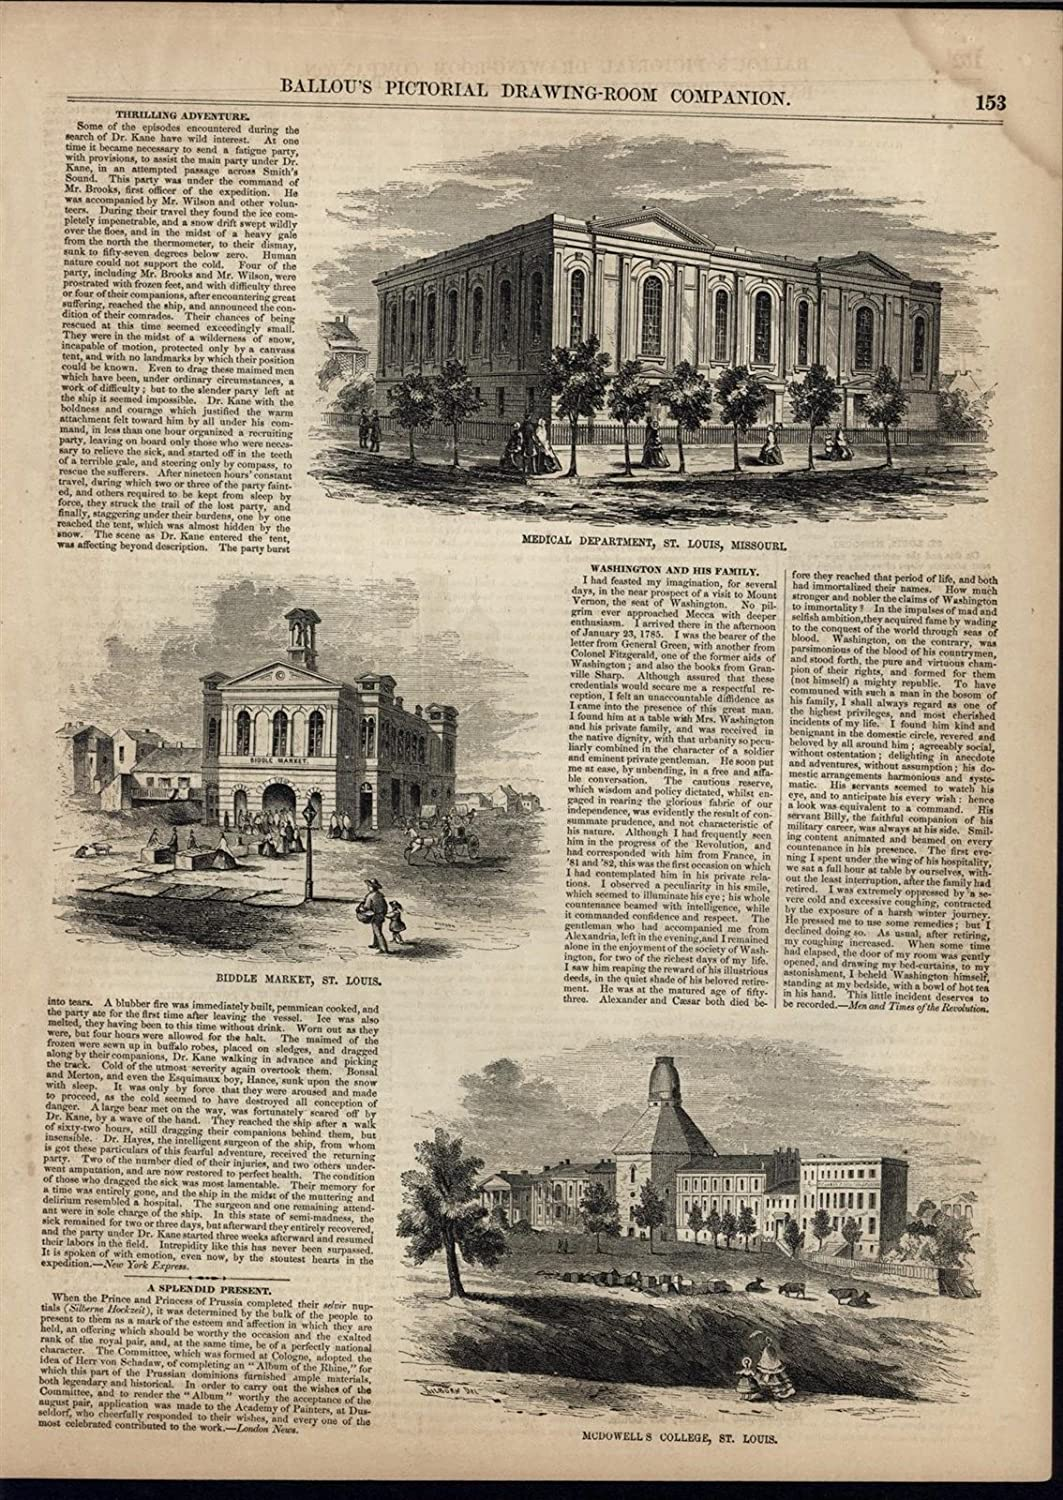 Amazon Com St Louis Medical Department Biddle Market College 1856 Antique Engraved Print Entertainment Collectibles